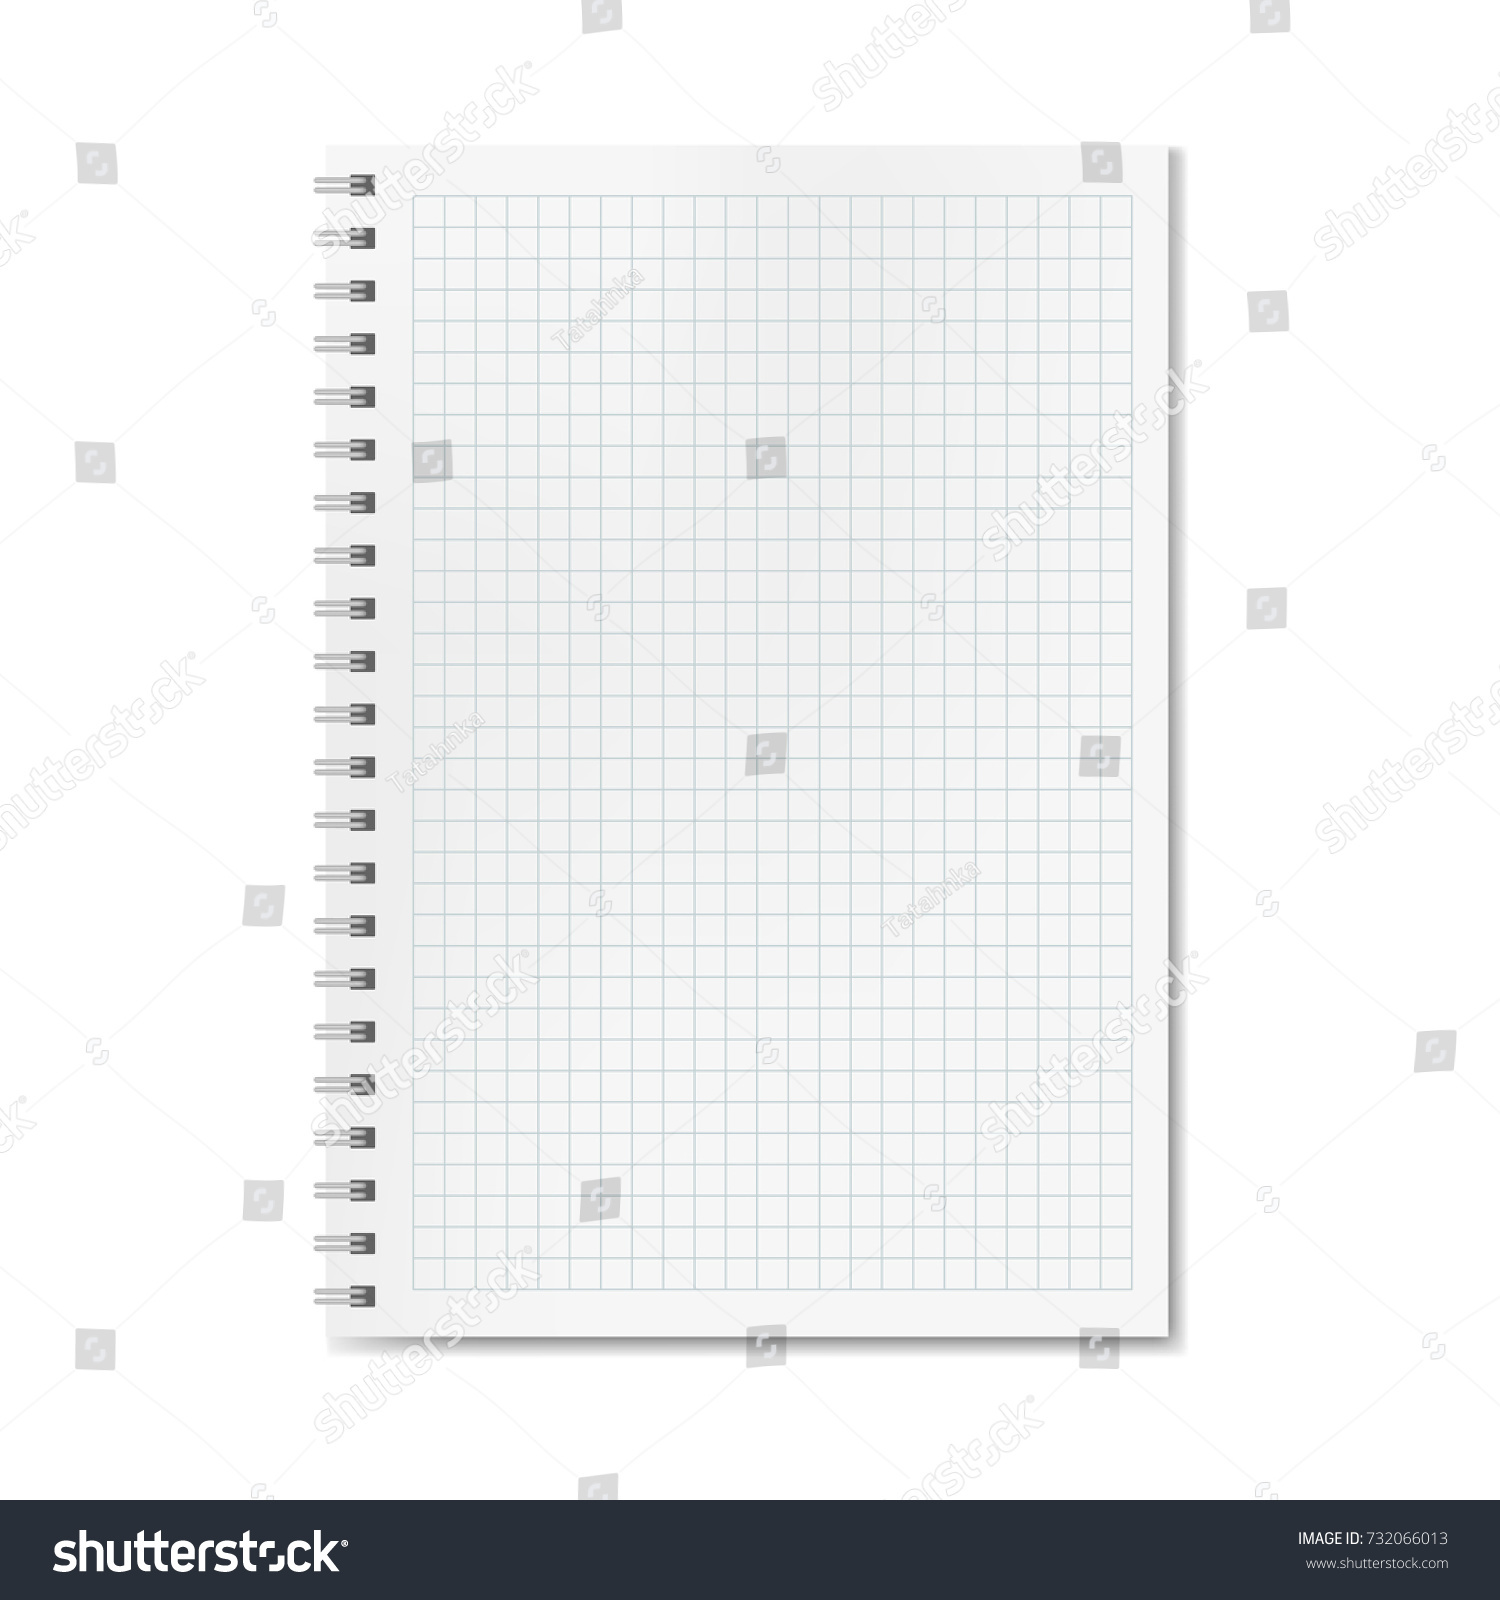 vector realistic quadrille or graph ruled notebook copybook with blank quad paper on metallic ring